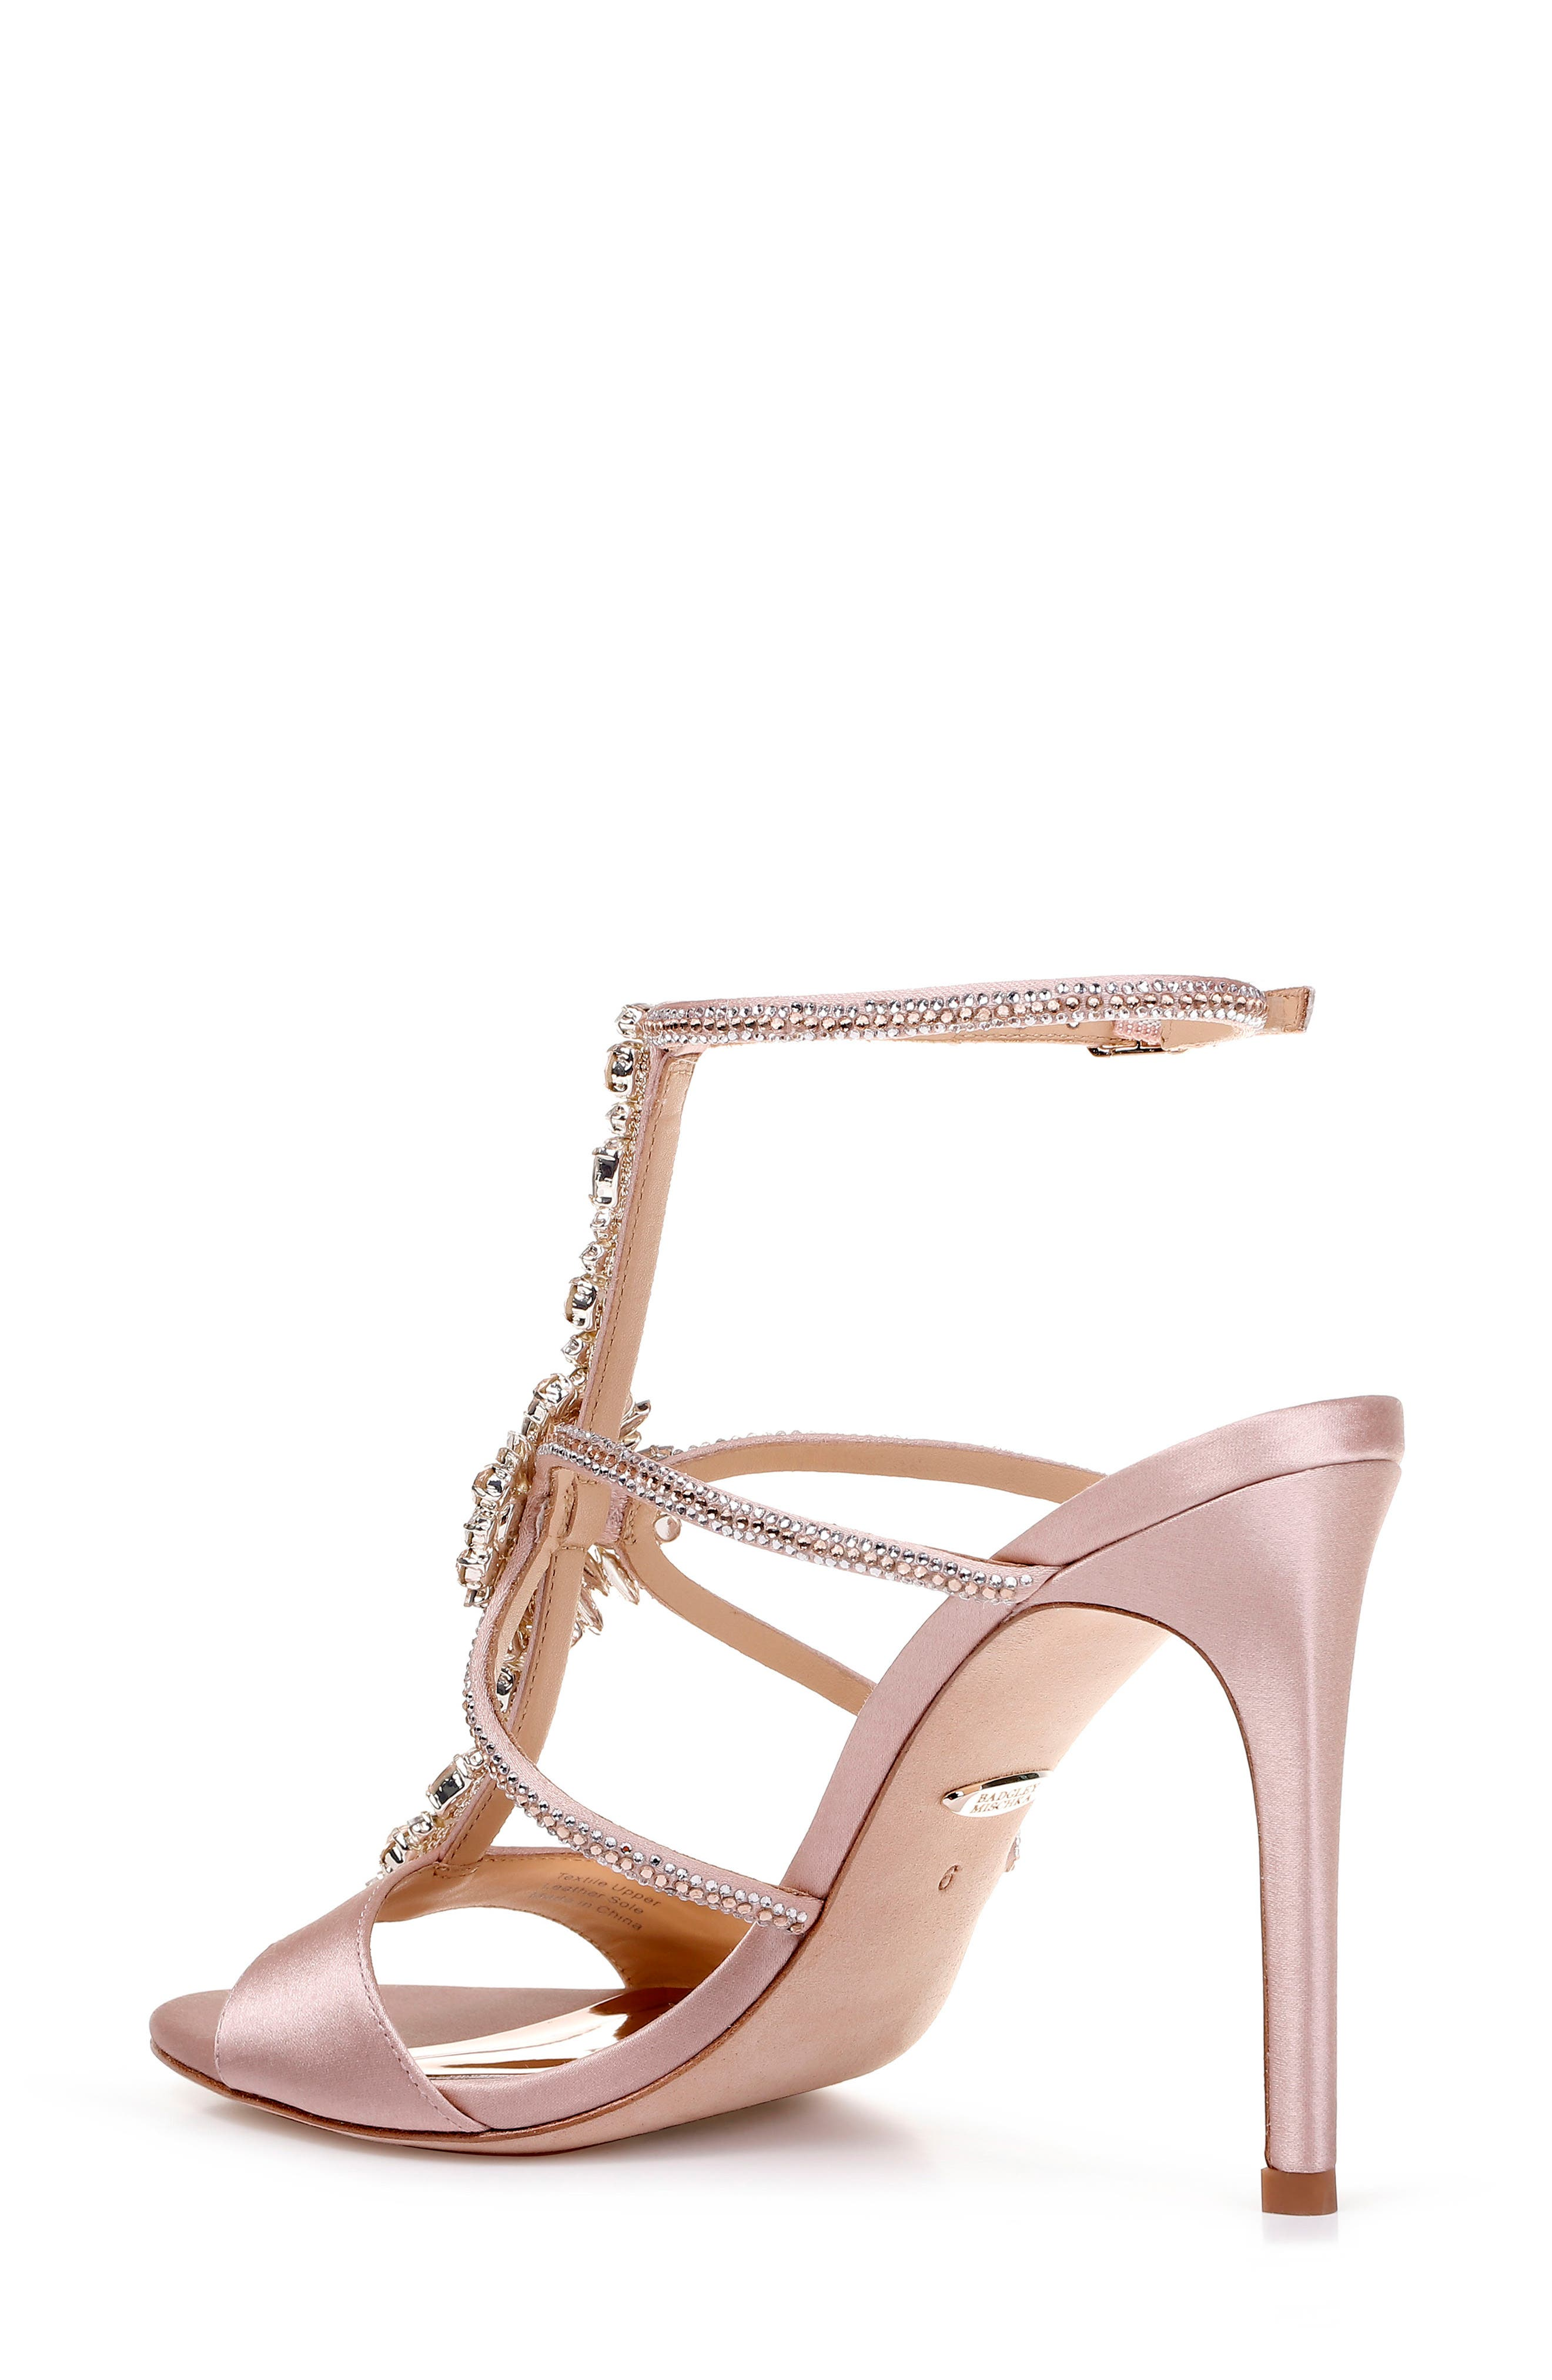 BADGLEY MISCHKA COLLECTION, Badgley Mischka Faye Ankle Strap Sandal, Alternate thumbnail 2, color, SOFT BLUSH SATIN